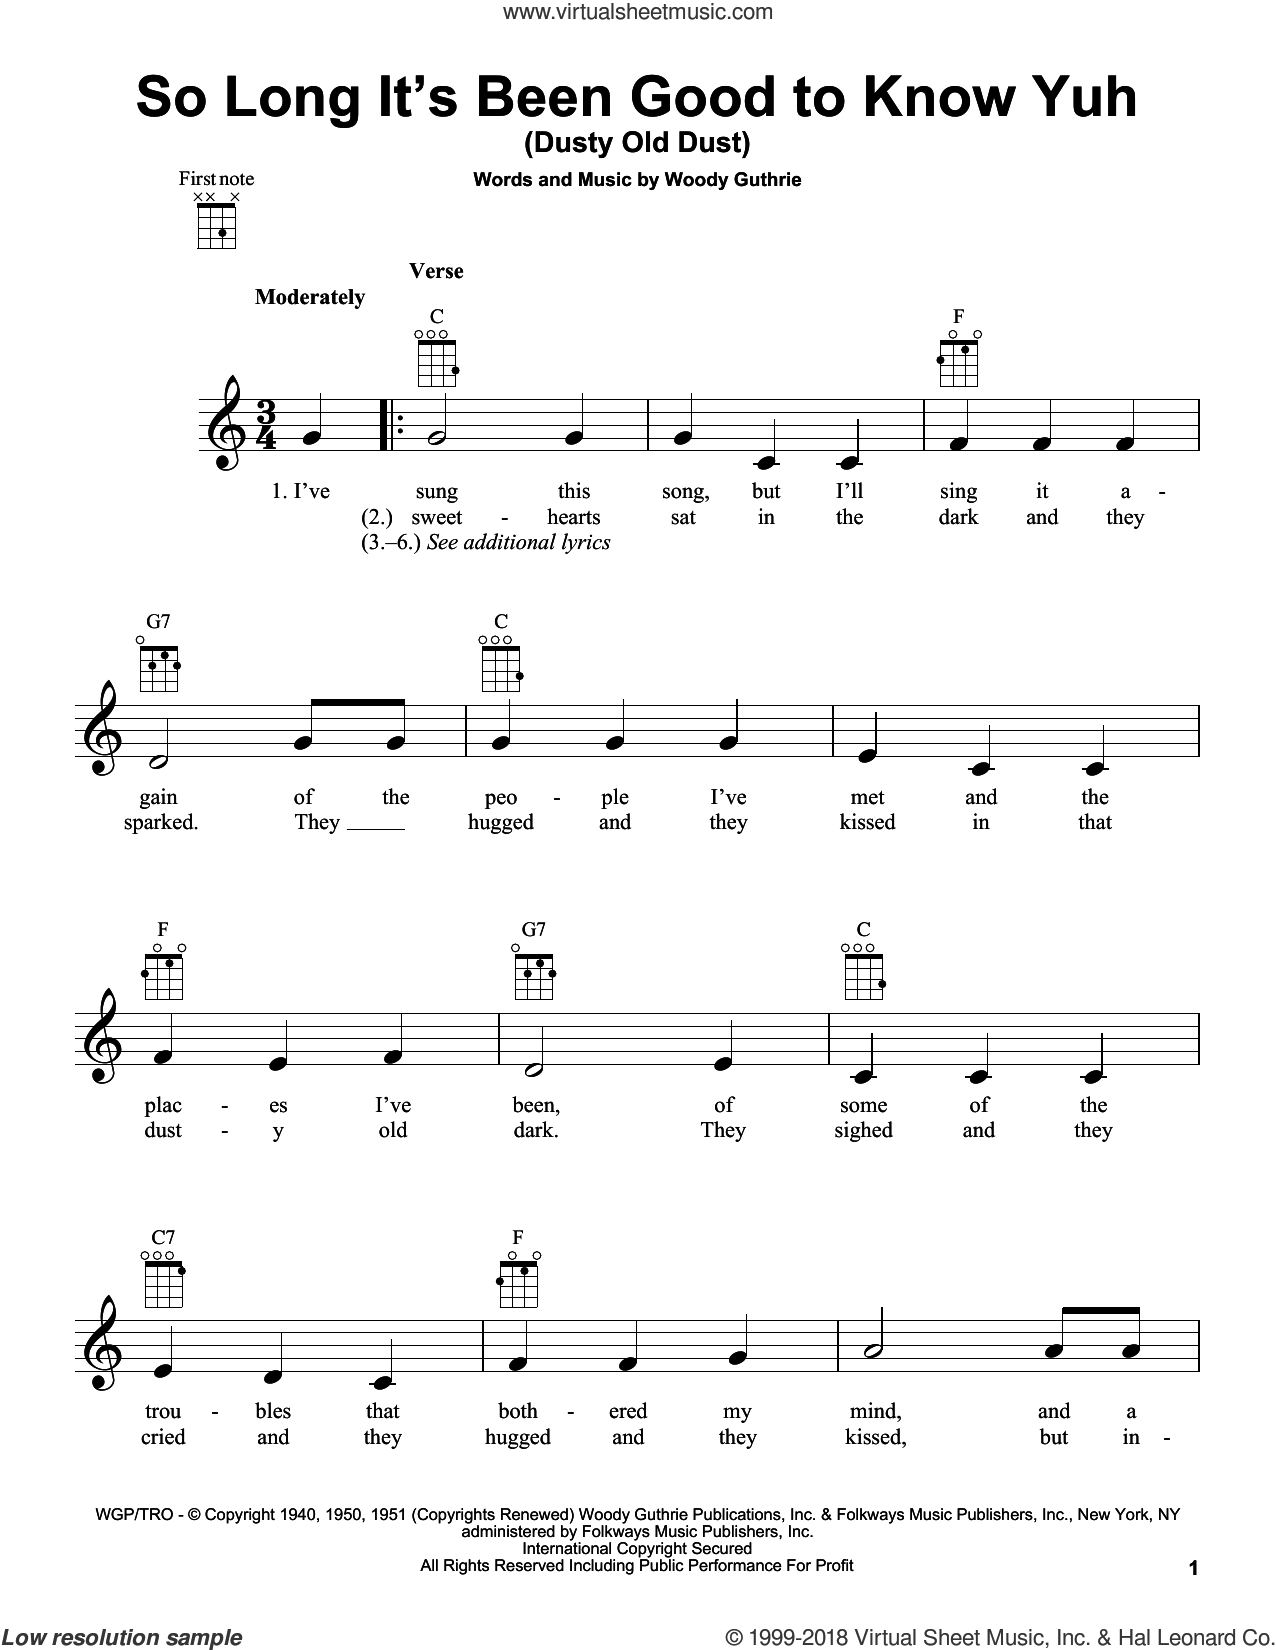 So Long It's Been Good To Know Yuh (Dusty Old Dust) sheet music for ukulele by Woody Guthrie, intermediate. Score Image Preview.